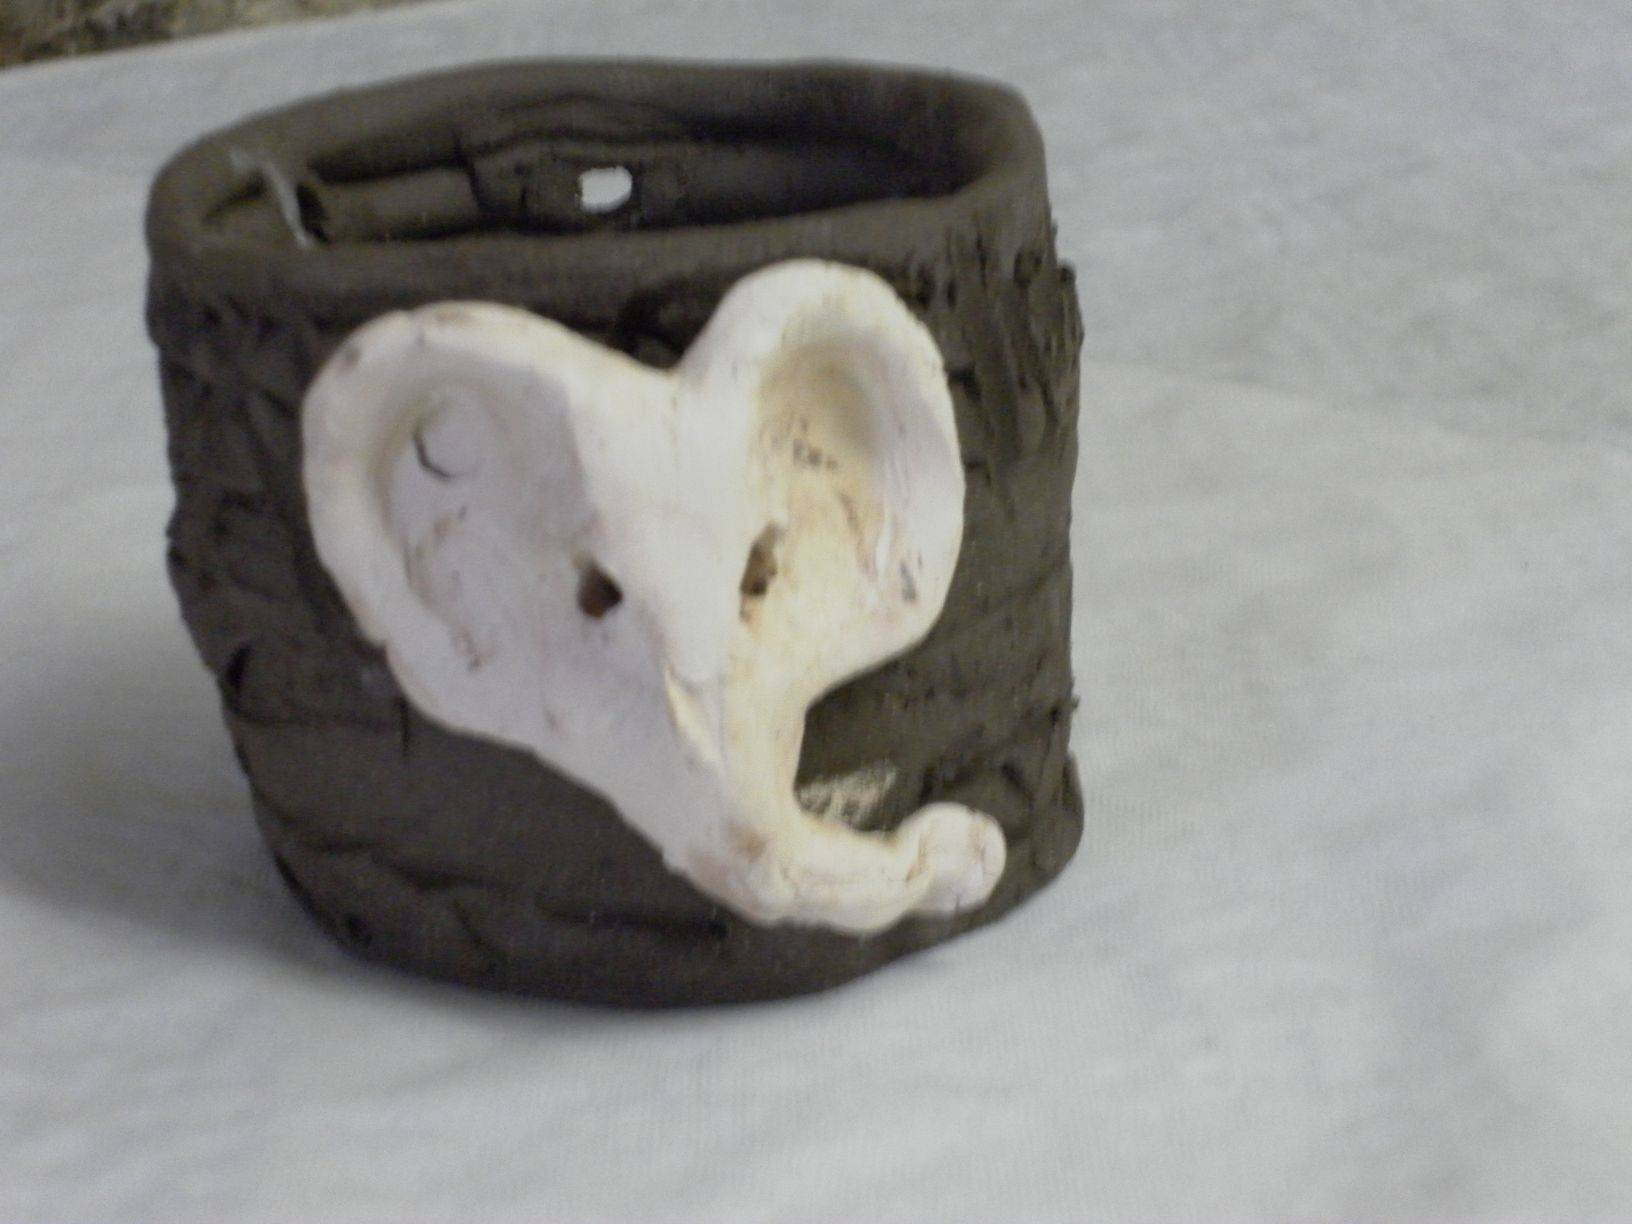 Workshop with Leah Green (North Wales Potters)